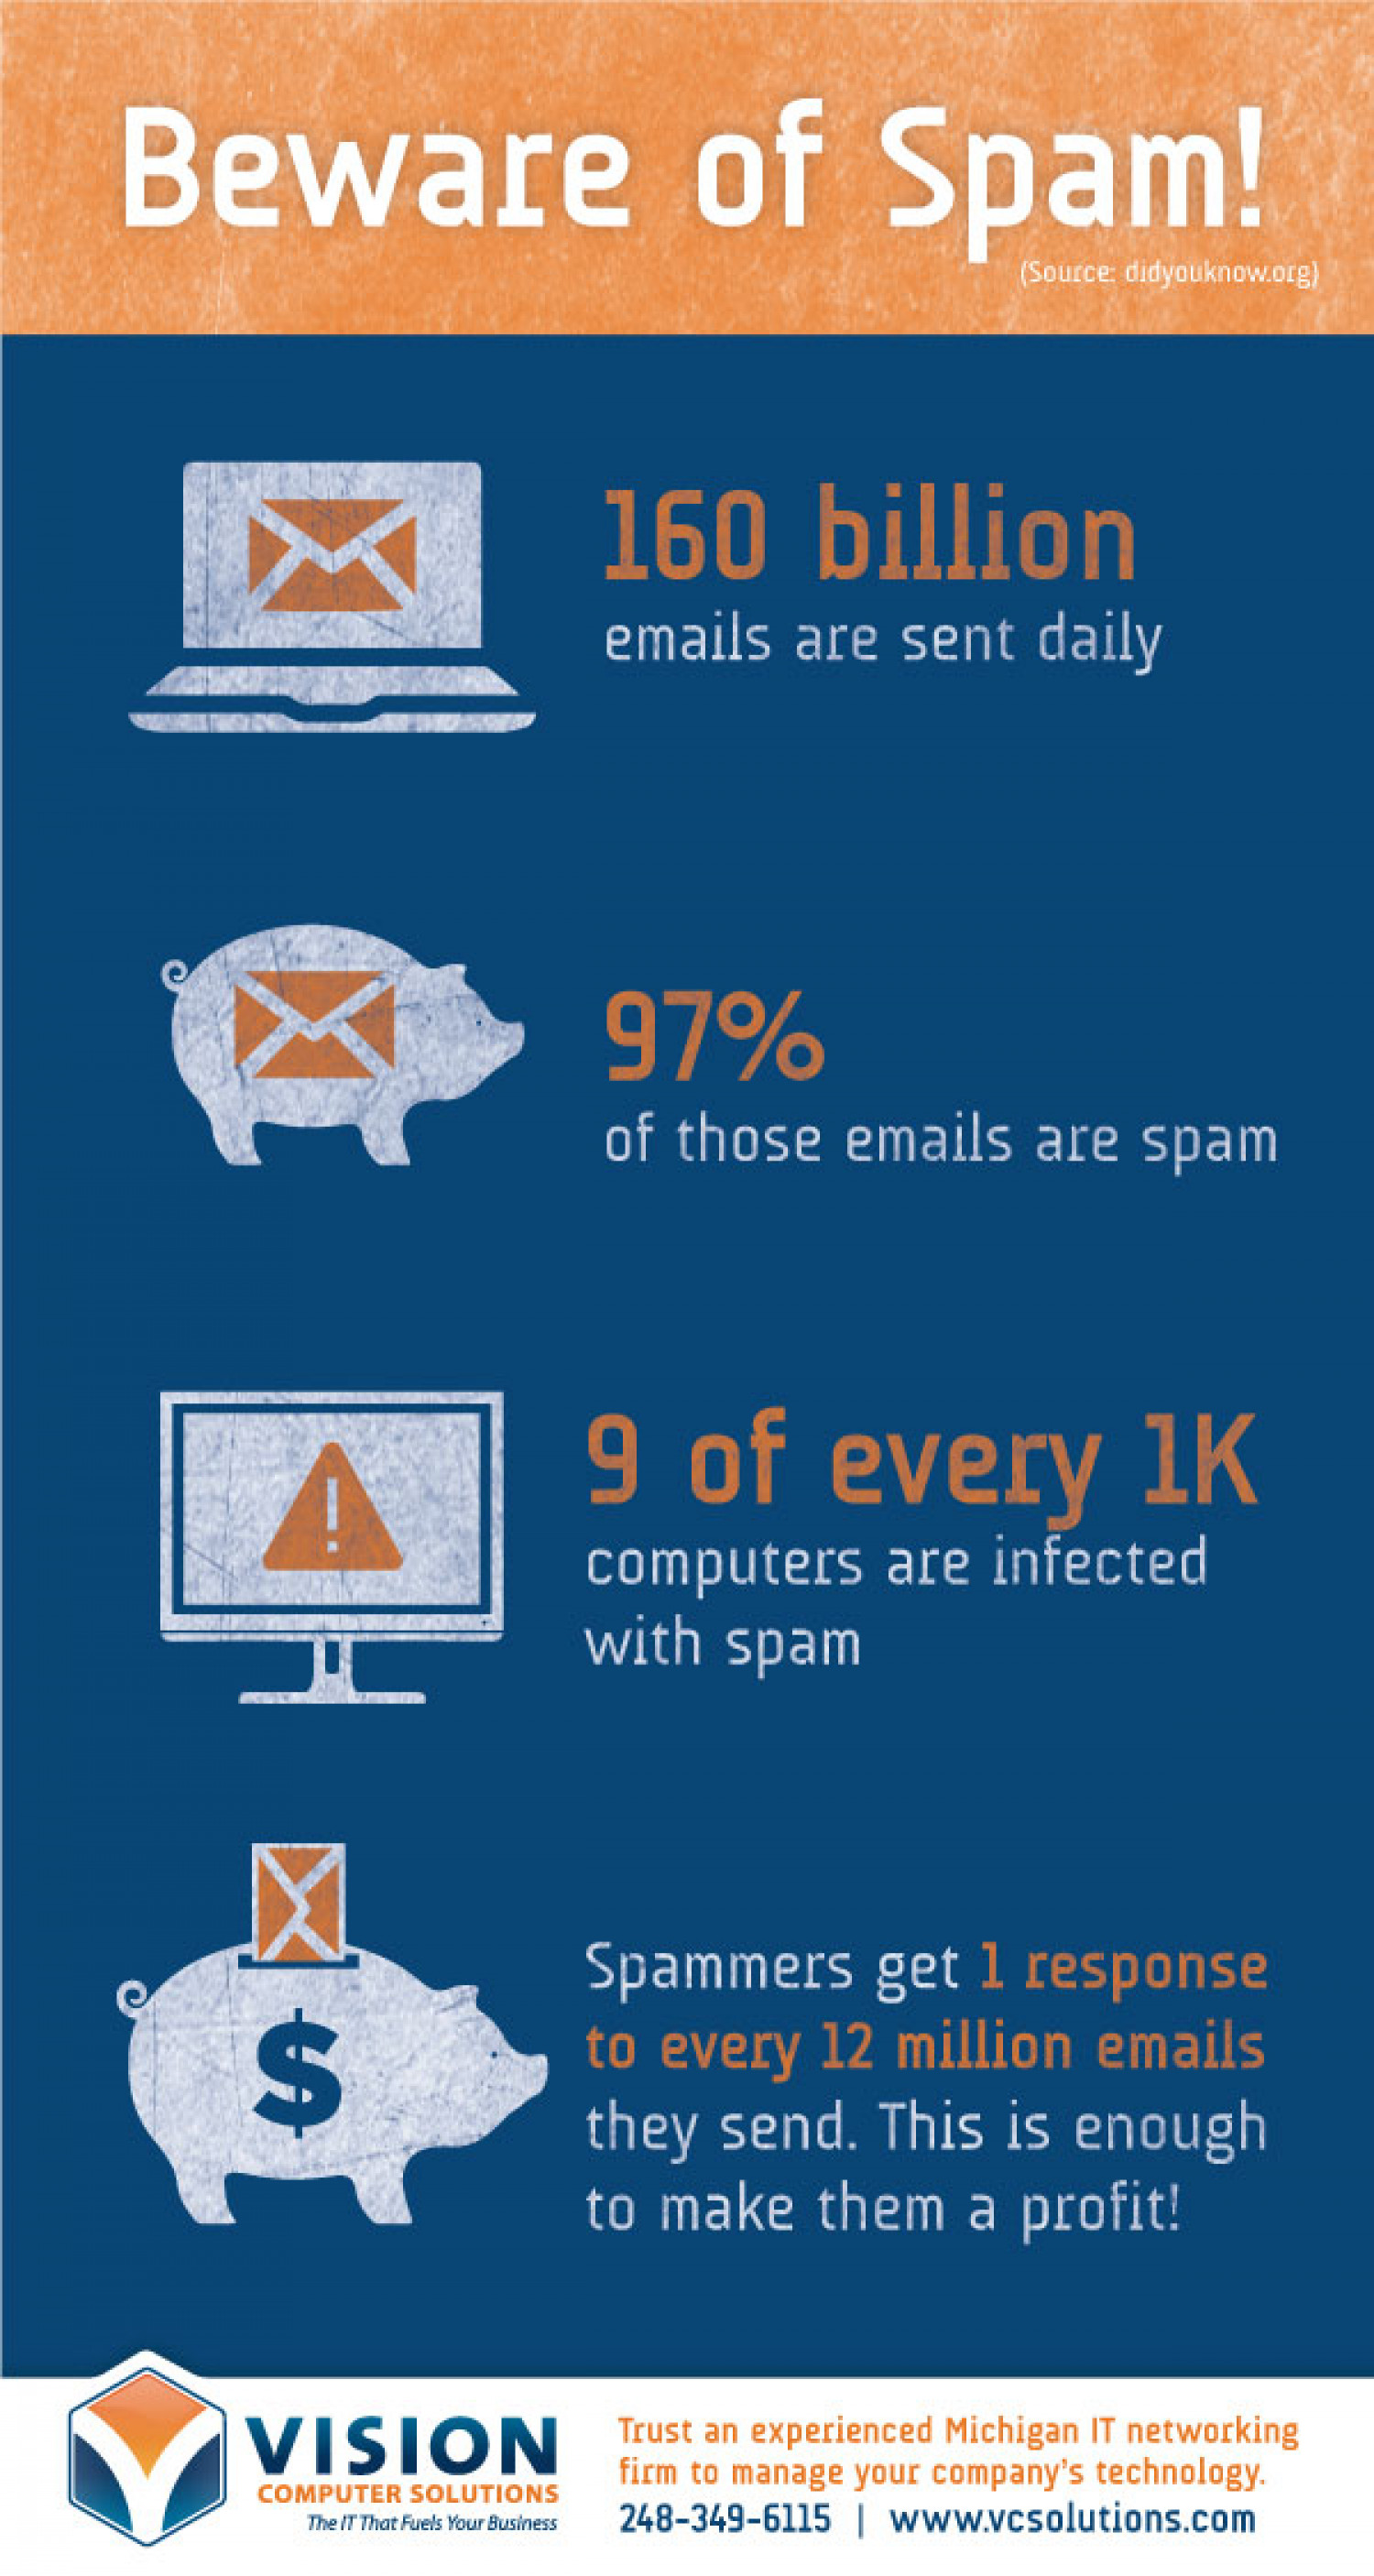 Beware of Spam Infographic